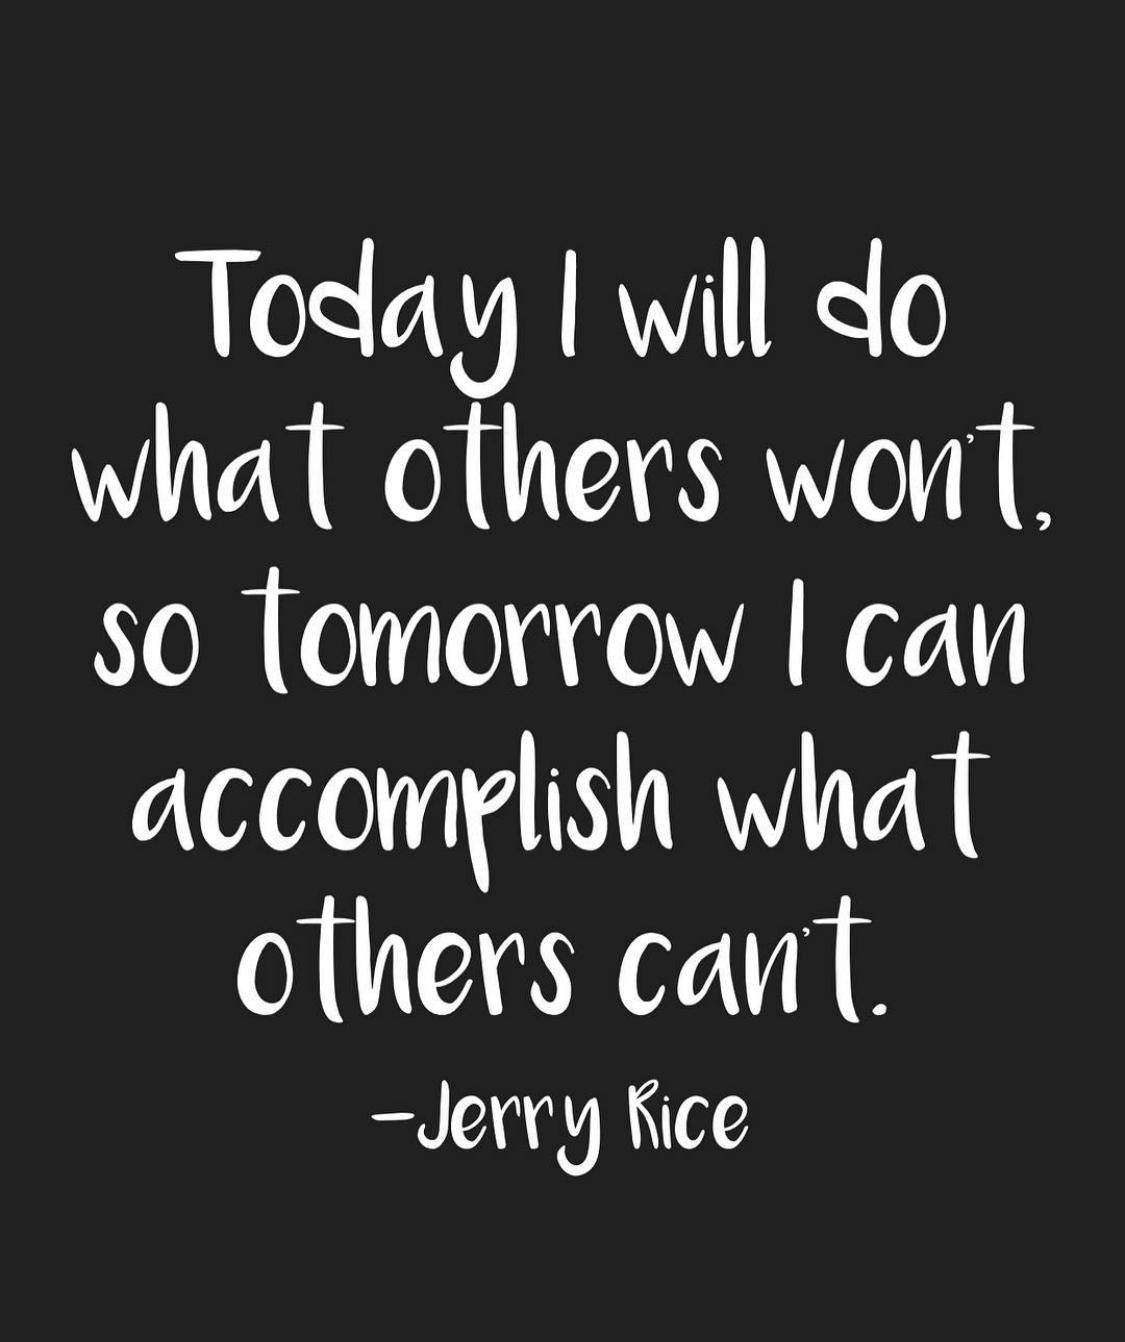 [Image] Today I will do what others won't, so tomorrow I can accomplish what others can't. – Jerry Rice